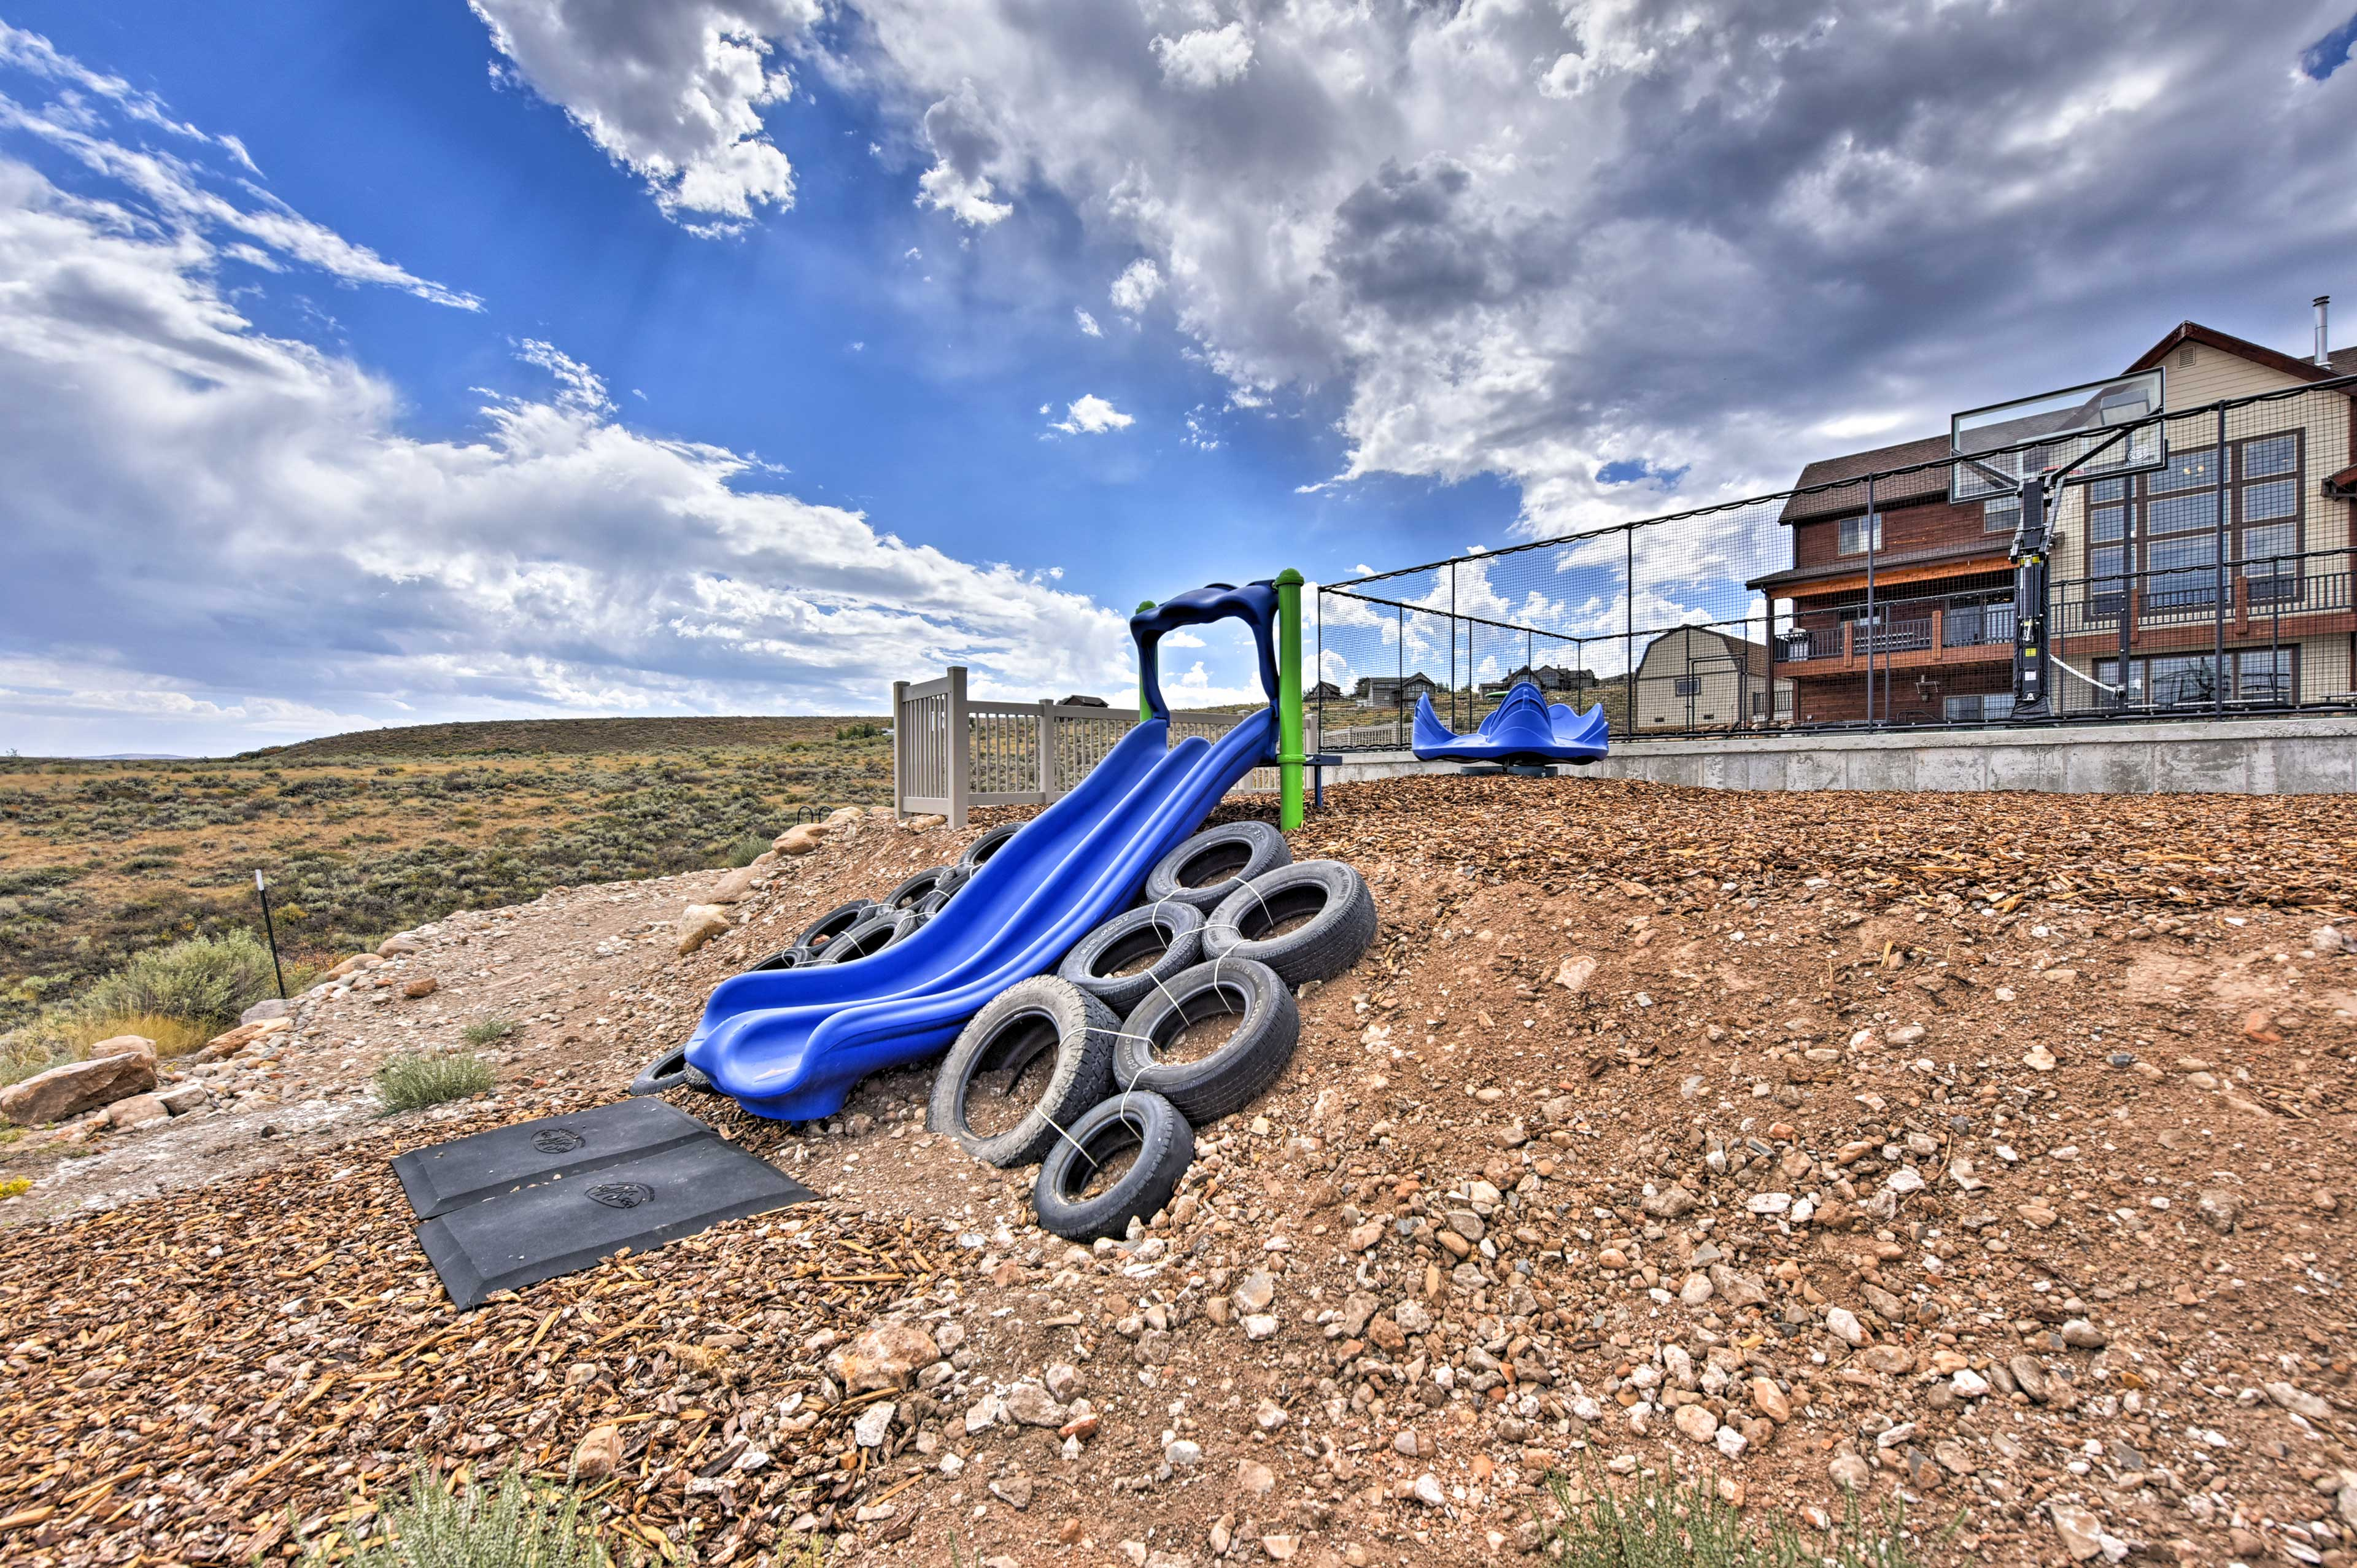 Let the kids climb up the tires and go down the slides!